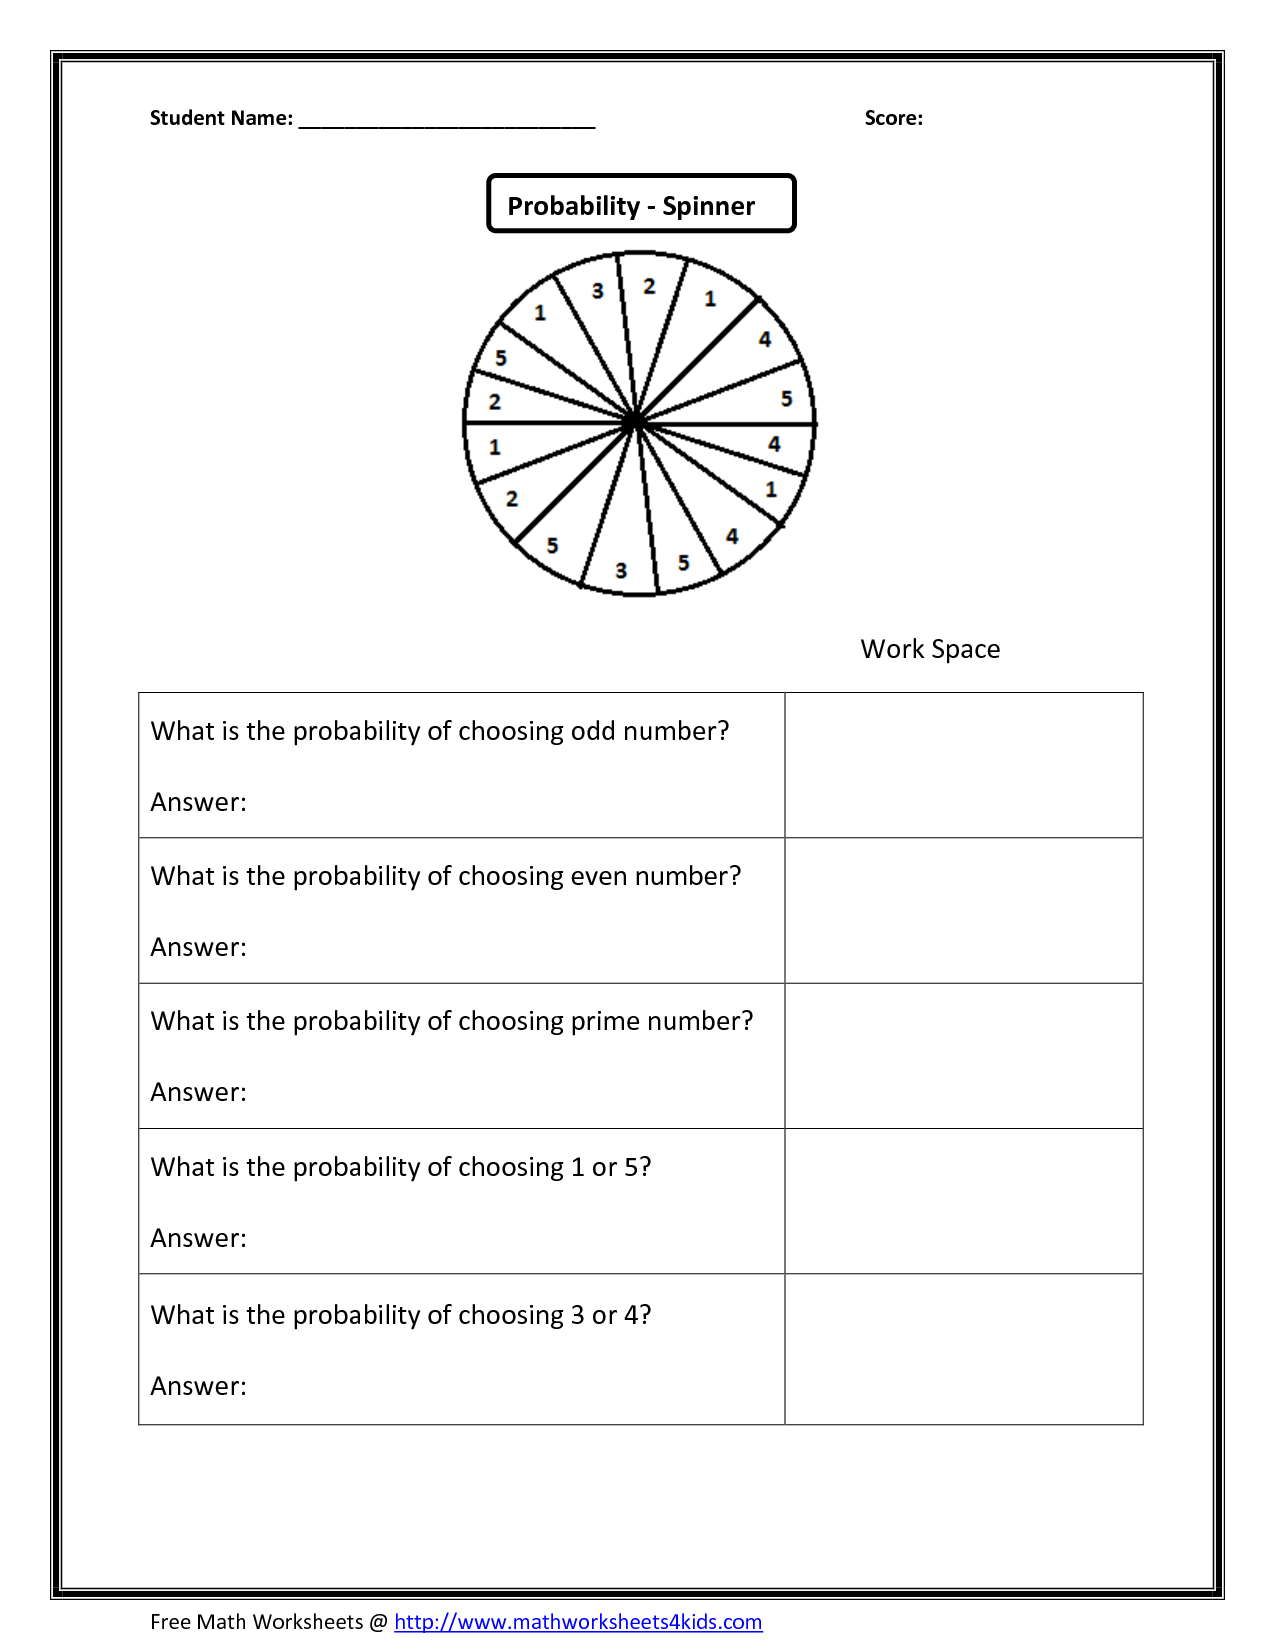 Triangle Worksheet For 7th Grade